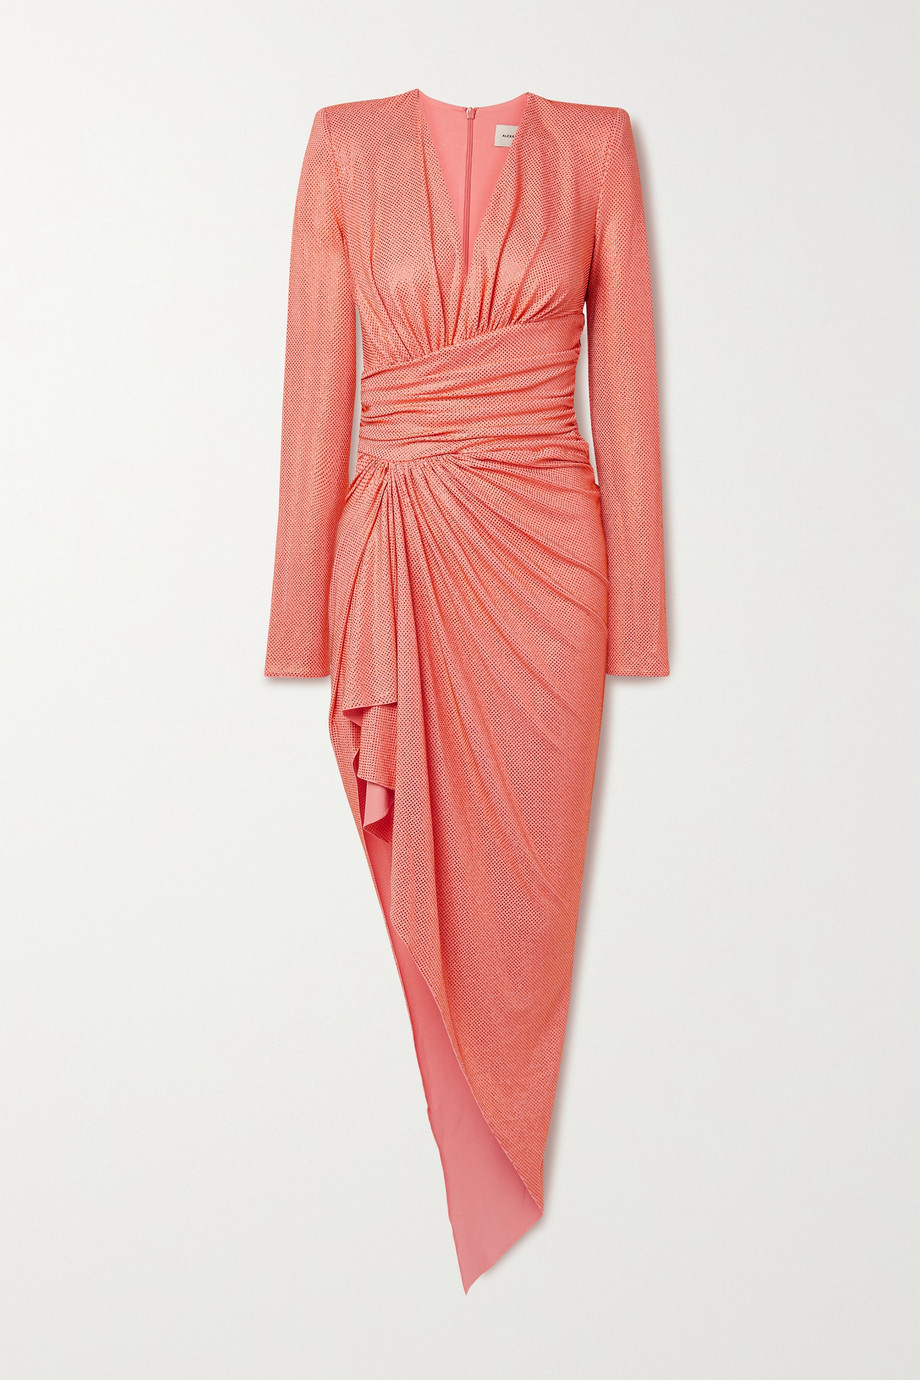 Alexandre Vauthier Asymmetric ruched crystal-embellished stretch-crepe dress